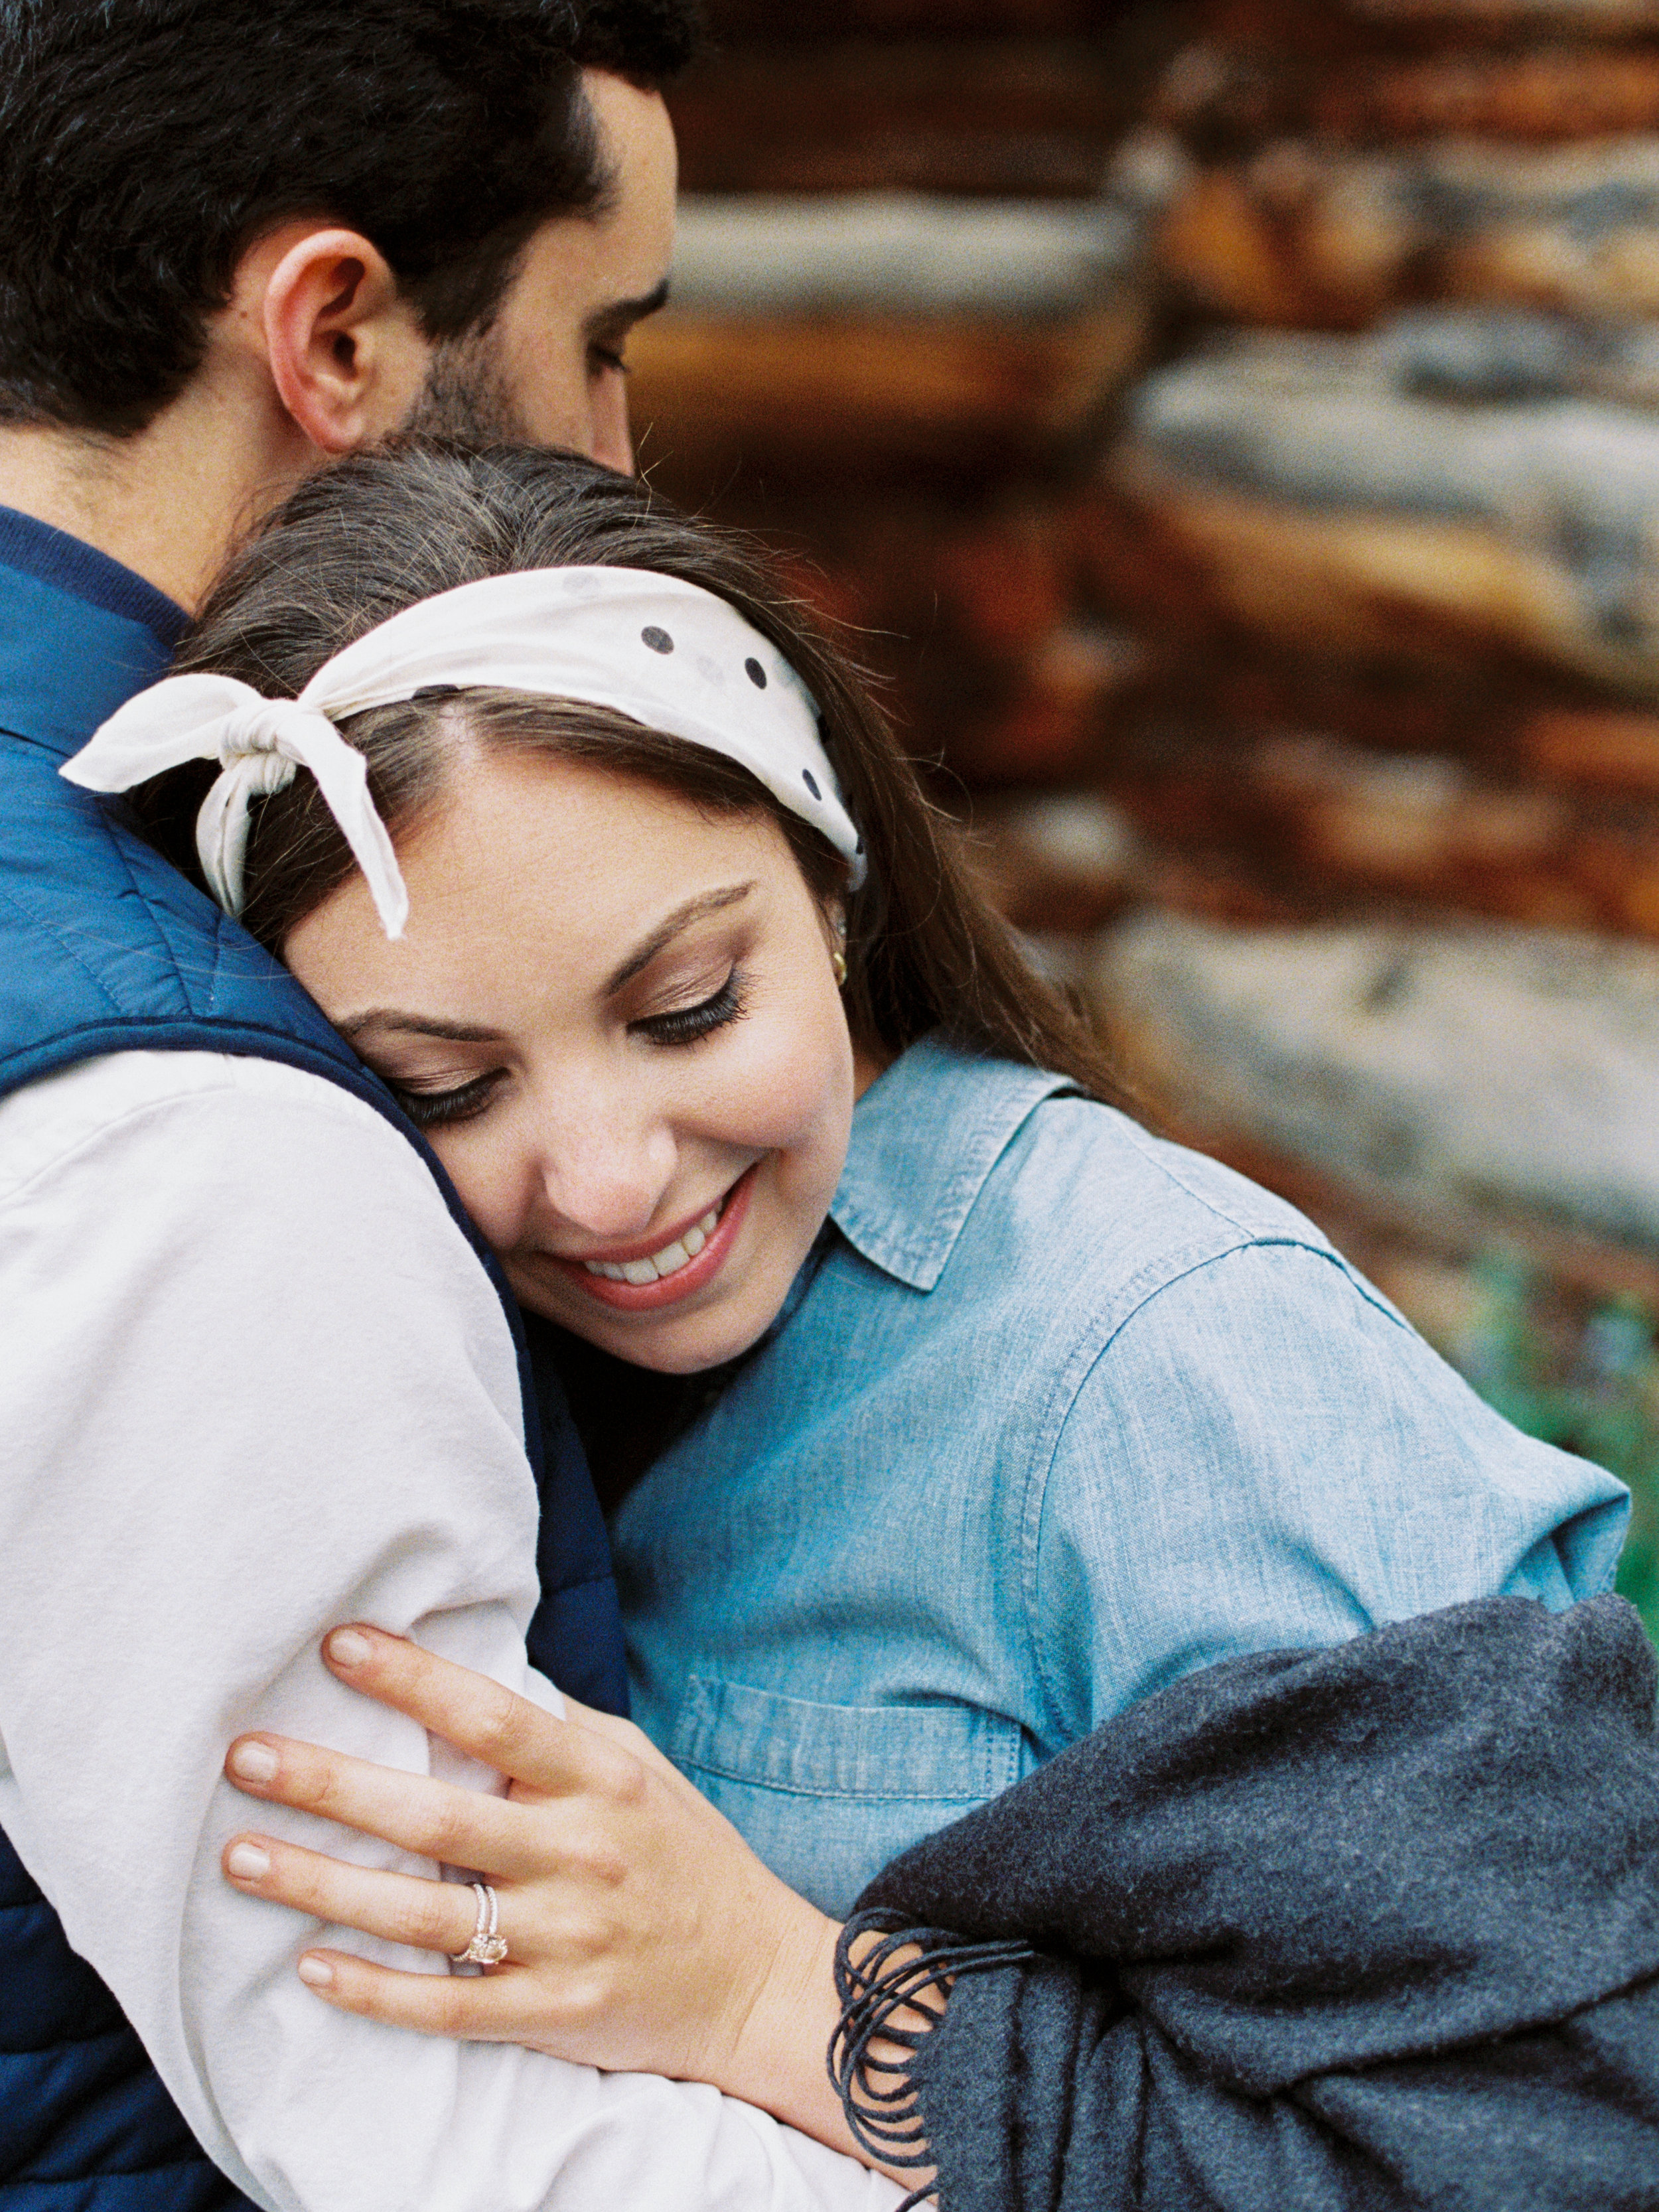 Vail Mountain Engagement Session by Tara Bielecki Photography